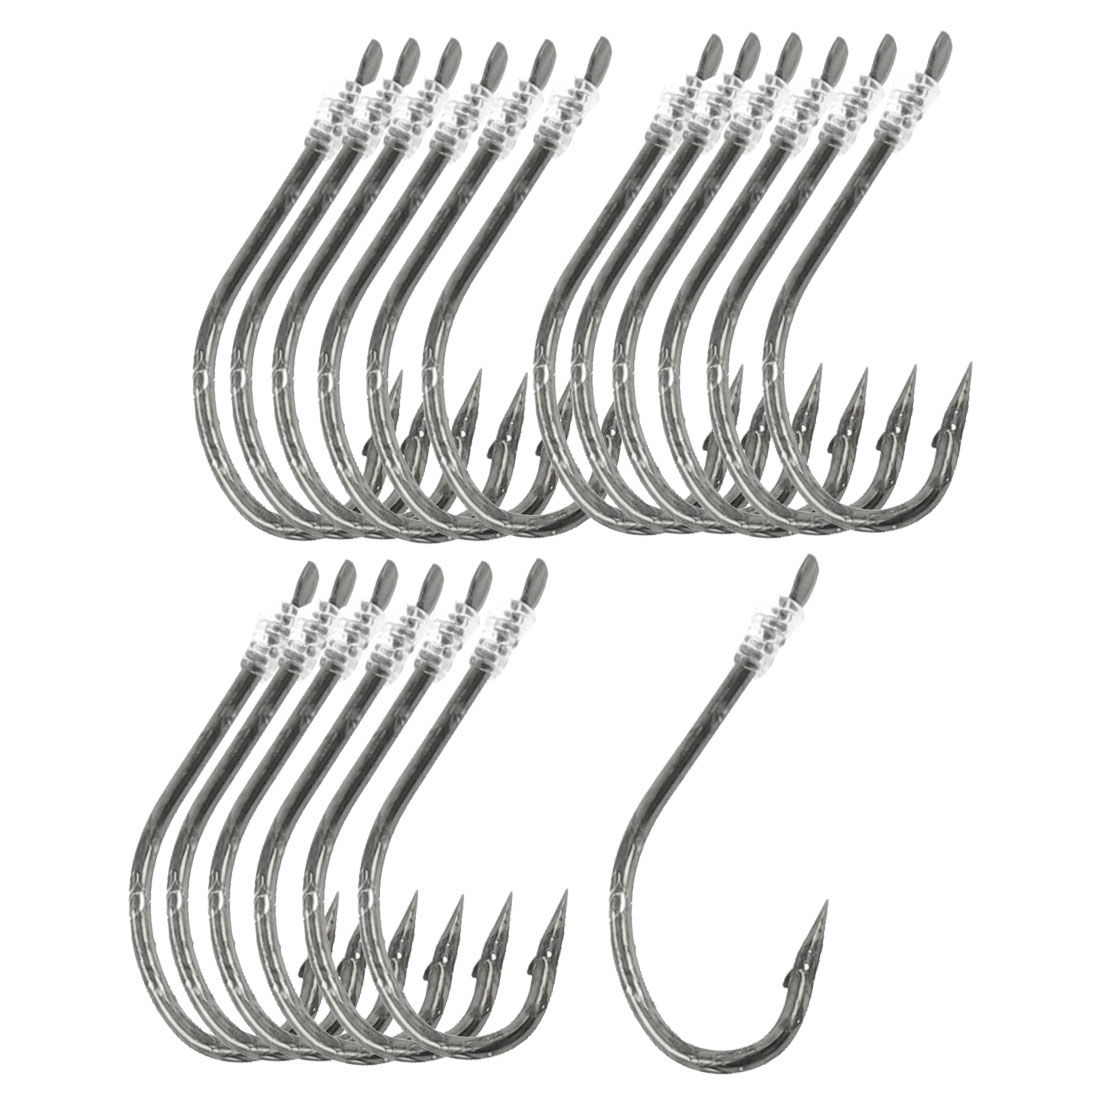 "30 Pcs 20"" Long Fishing Line 20# Darl Gray Metal Fish Hooks"